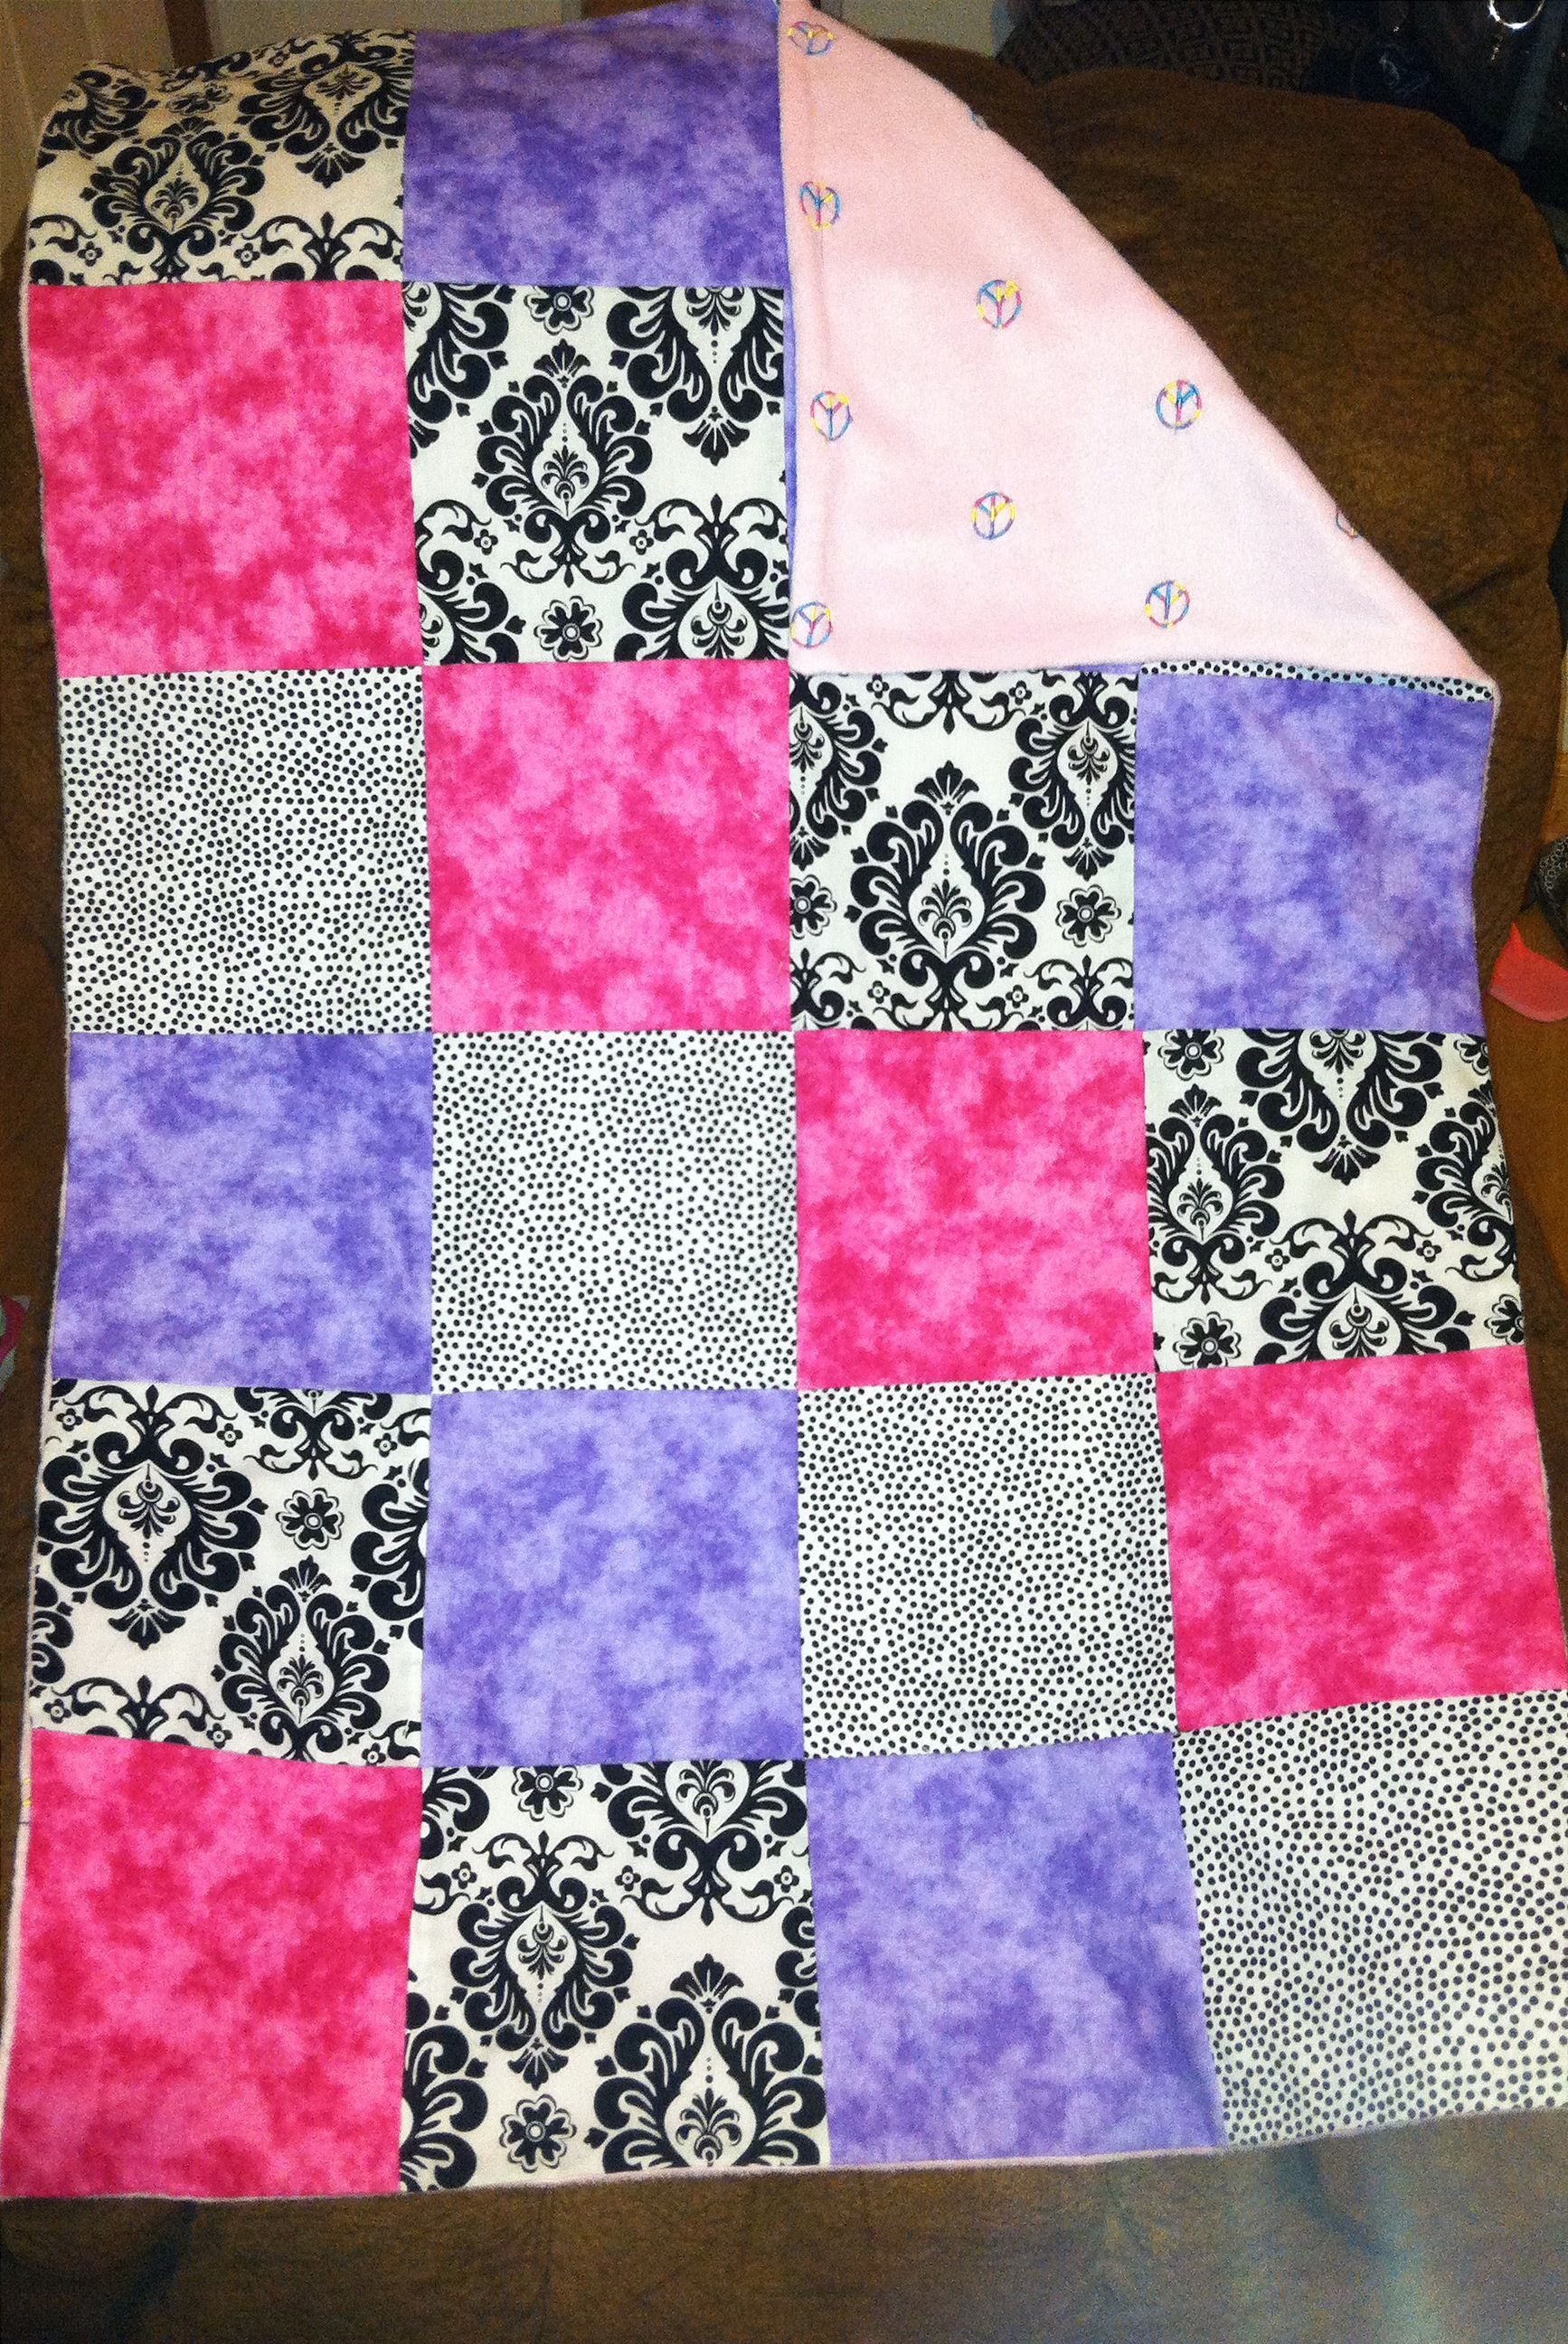 Square patchwork quilt diy lovely tutorials tutorials and patchwork easy to make quilt great for beginners 8x8 squares with fleece jeuxipadfo Gallery